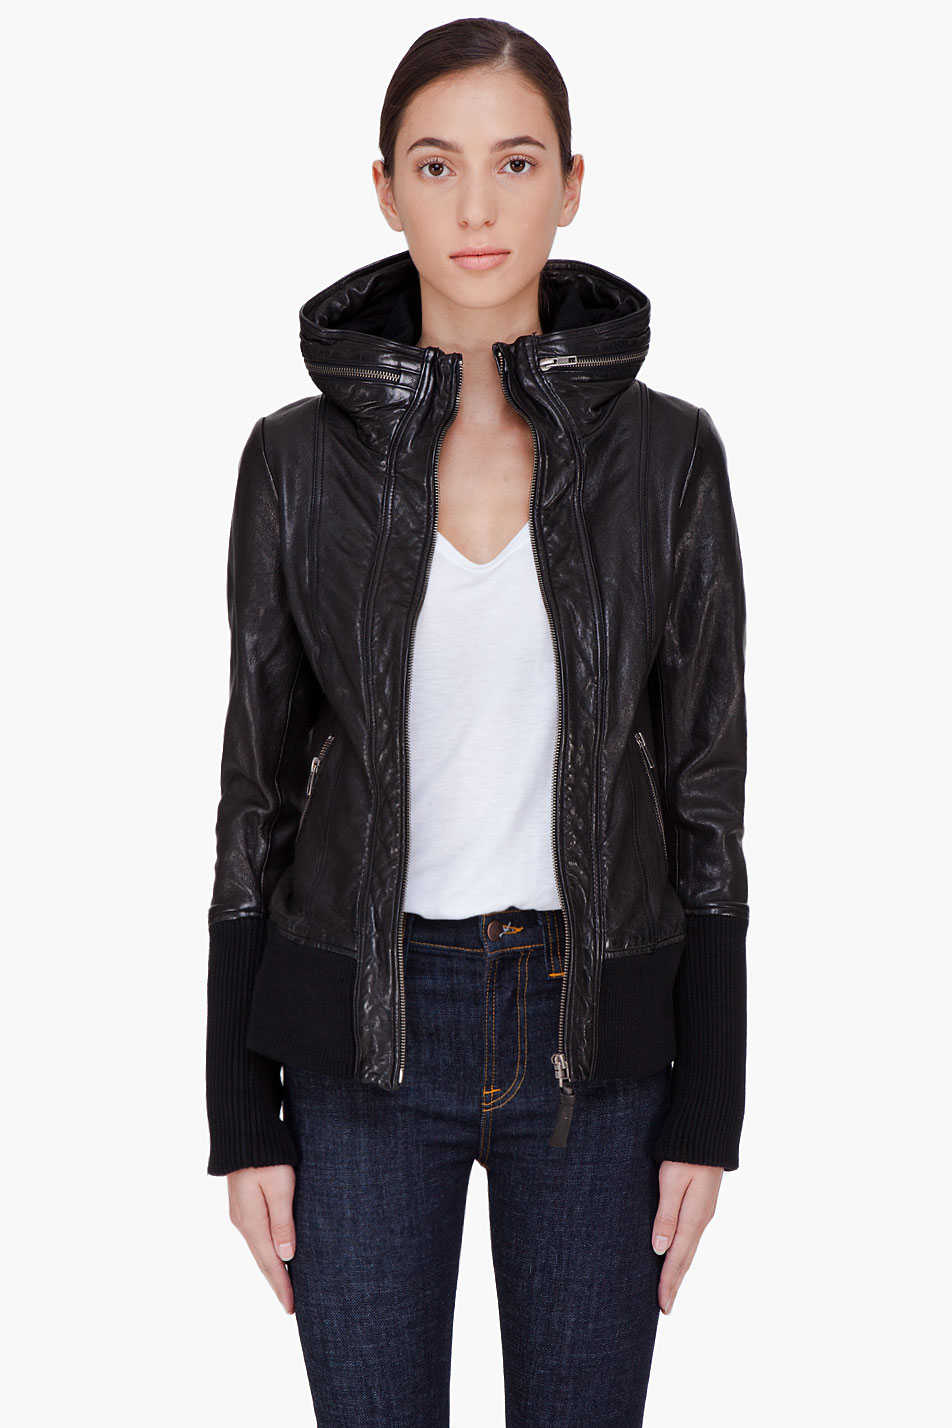 Lyst - Mackage Black Hooded Leather Jacket in Black